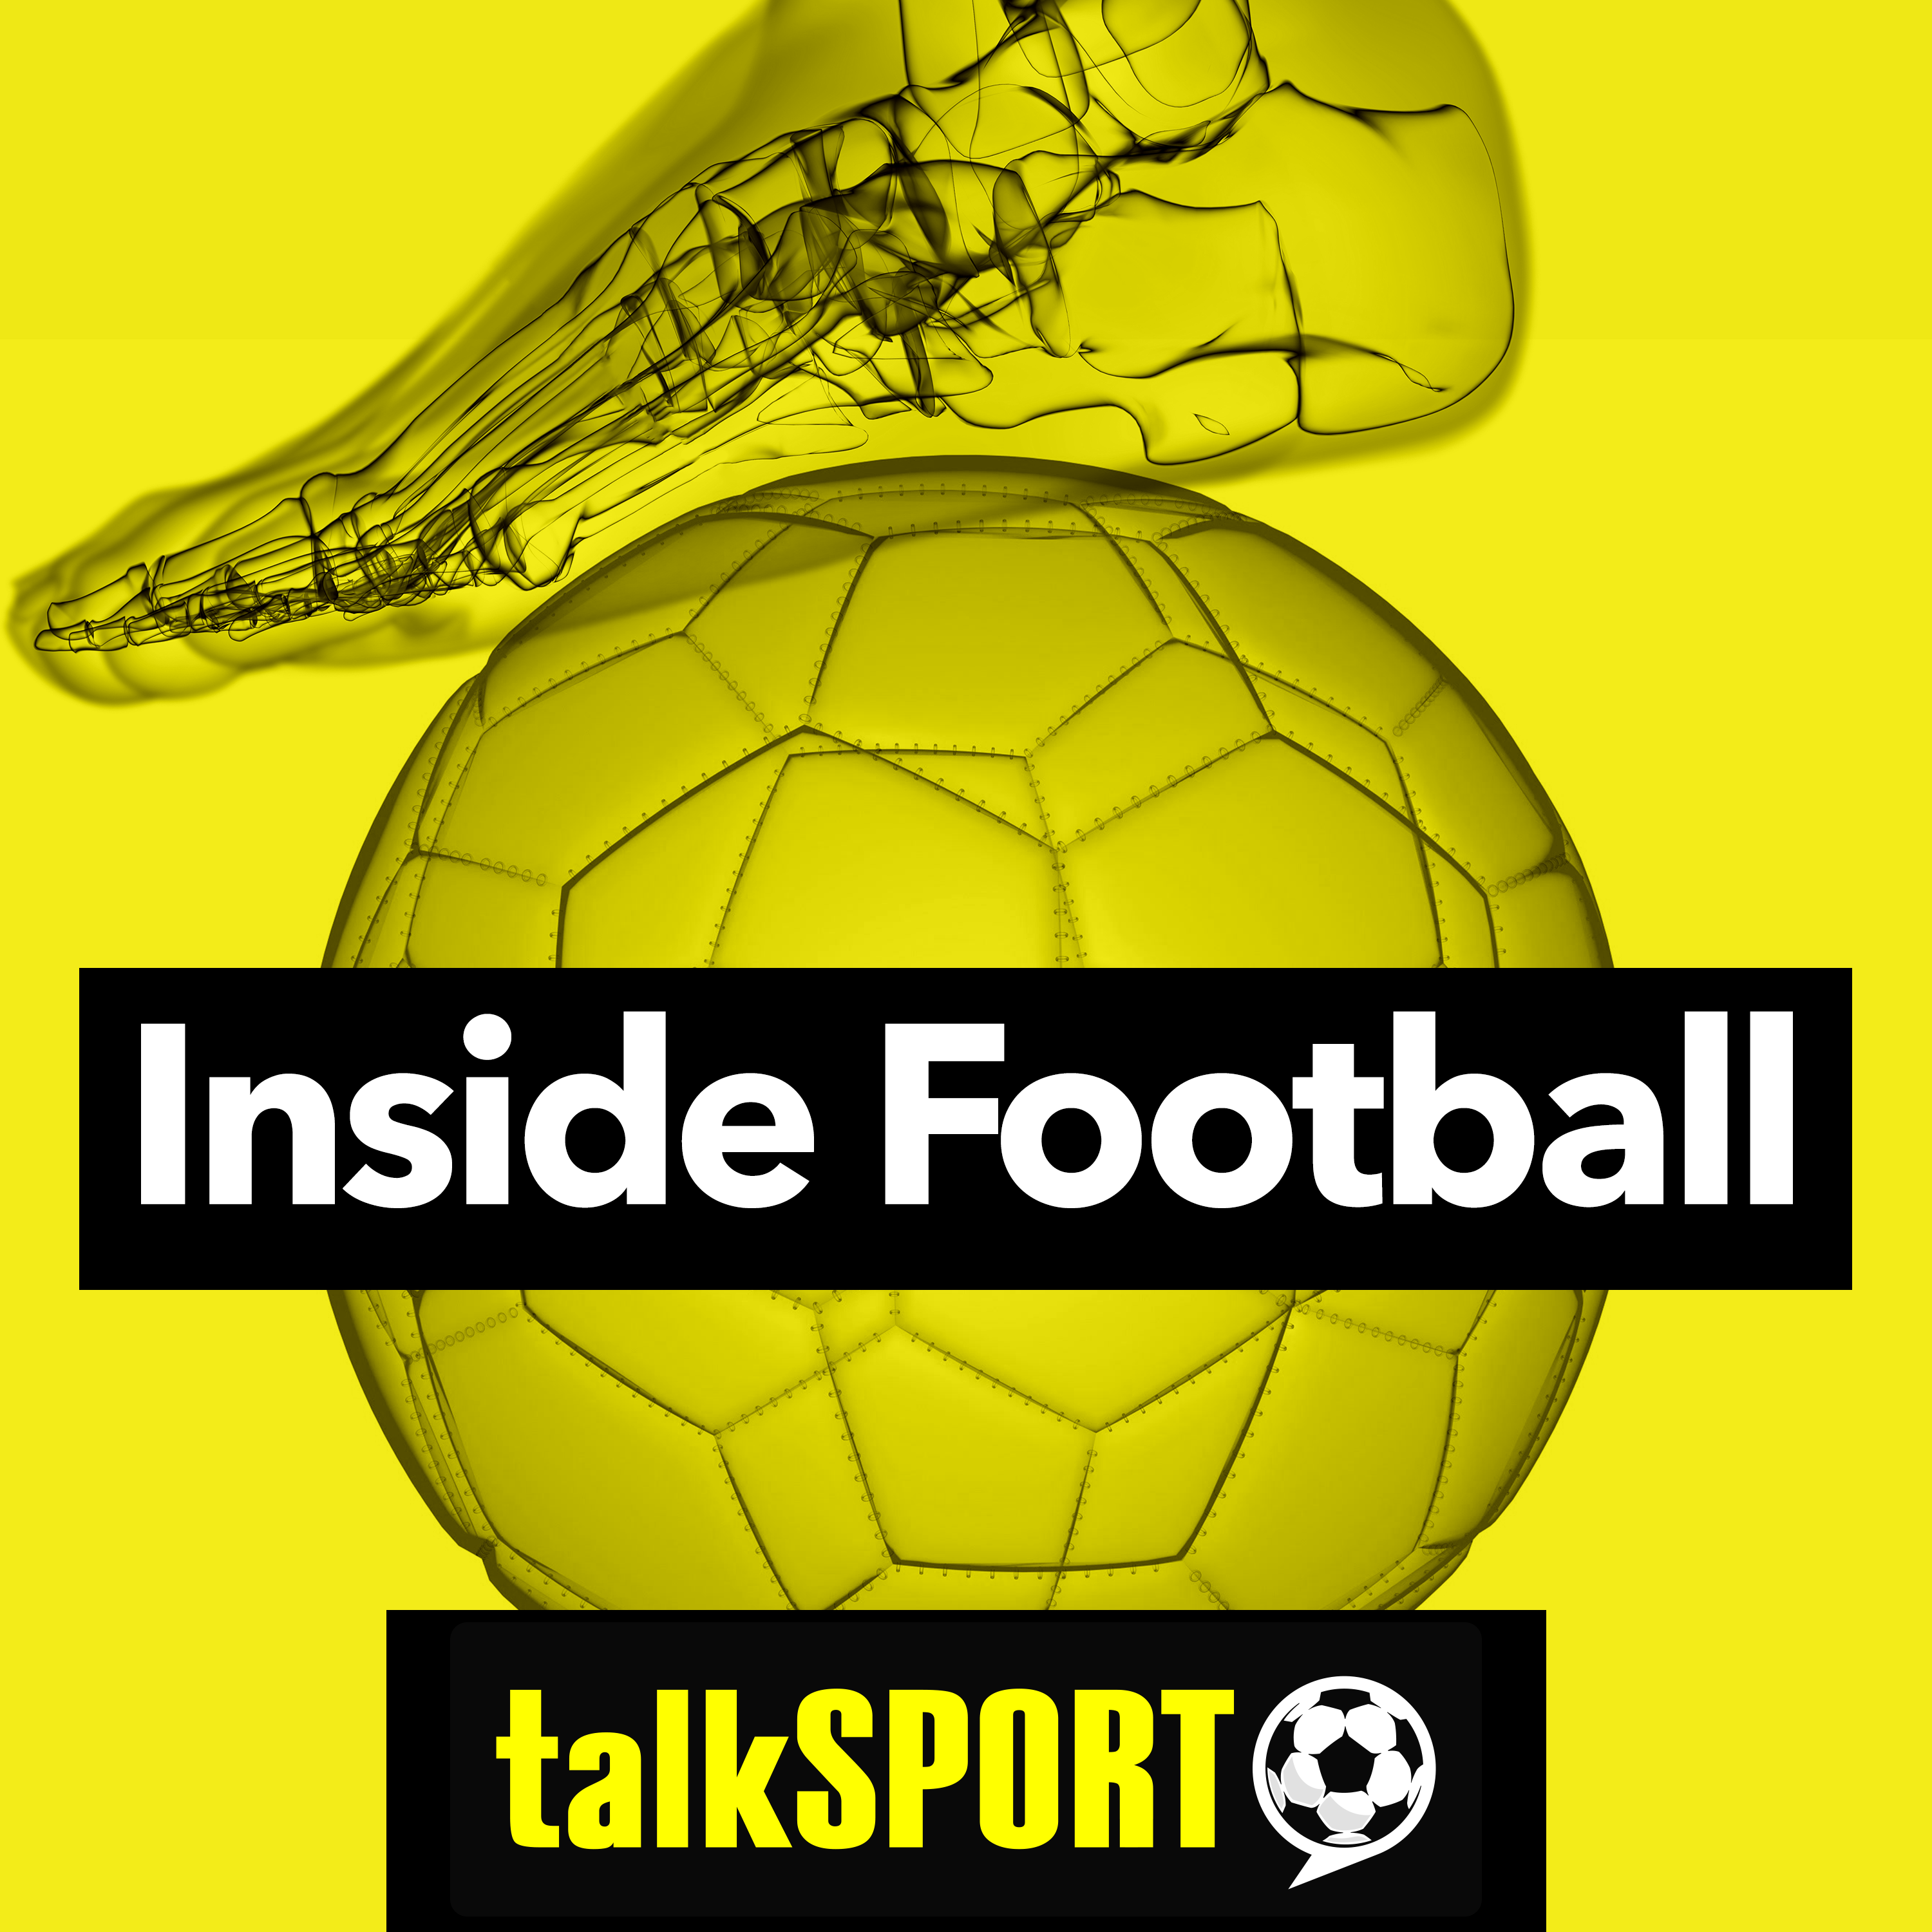 Inside Football With Guillem Balague Goalkeeper Special With Asmir Begovic And Toni Anne Wayne Inside Football On Acast